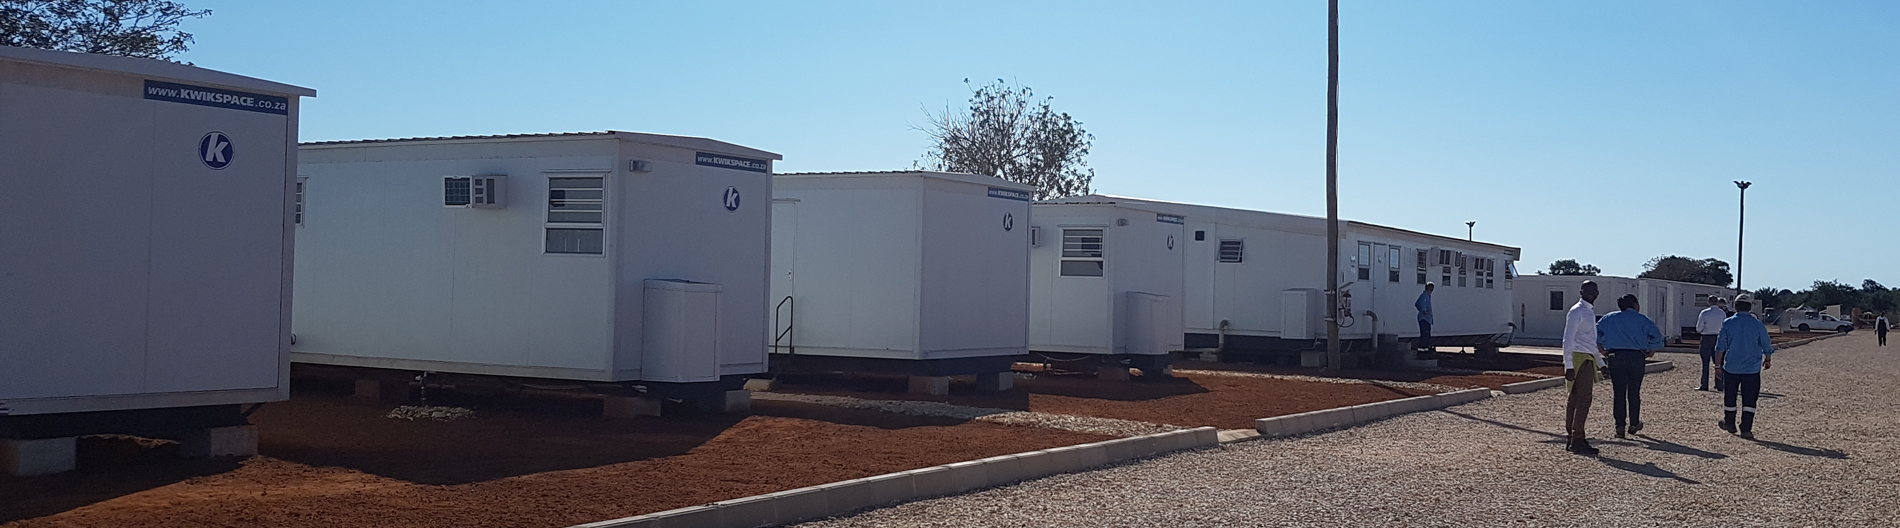 Image of mobile homes. Our prefab houses are produced in an environmentally friendly factory in Gauteng, South Africa.